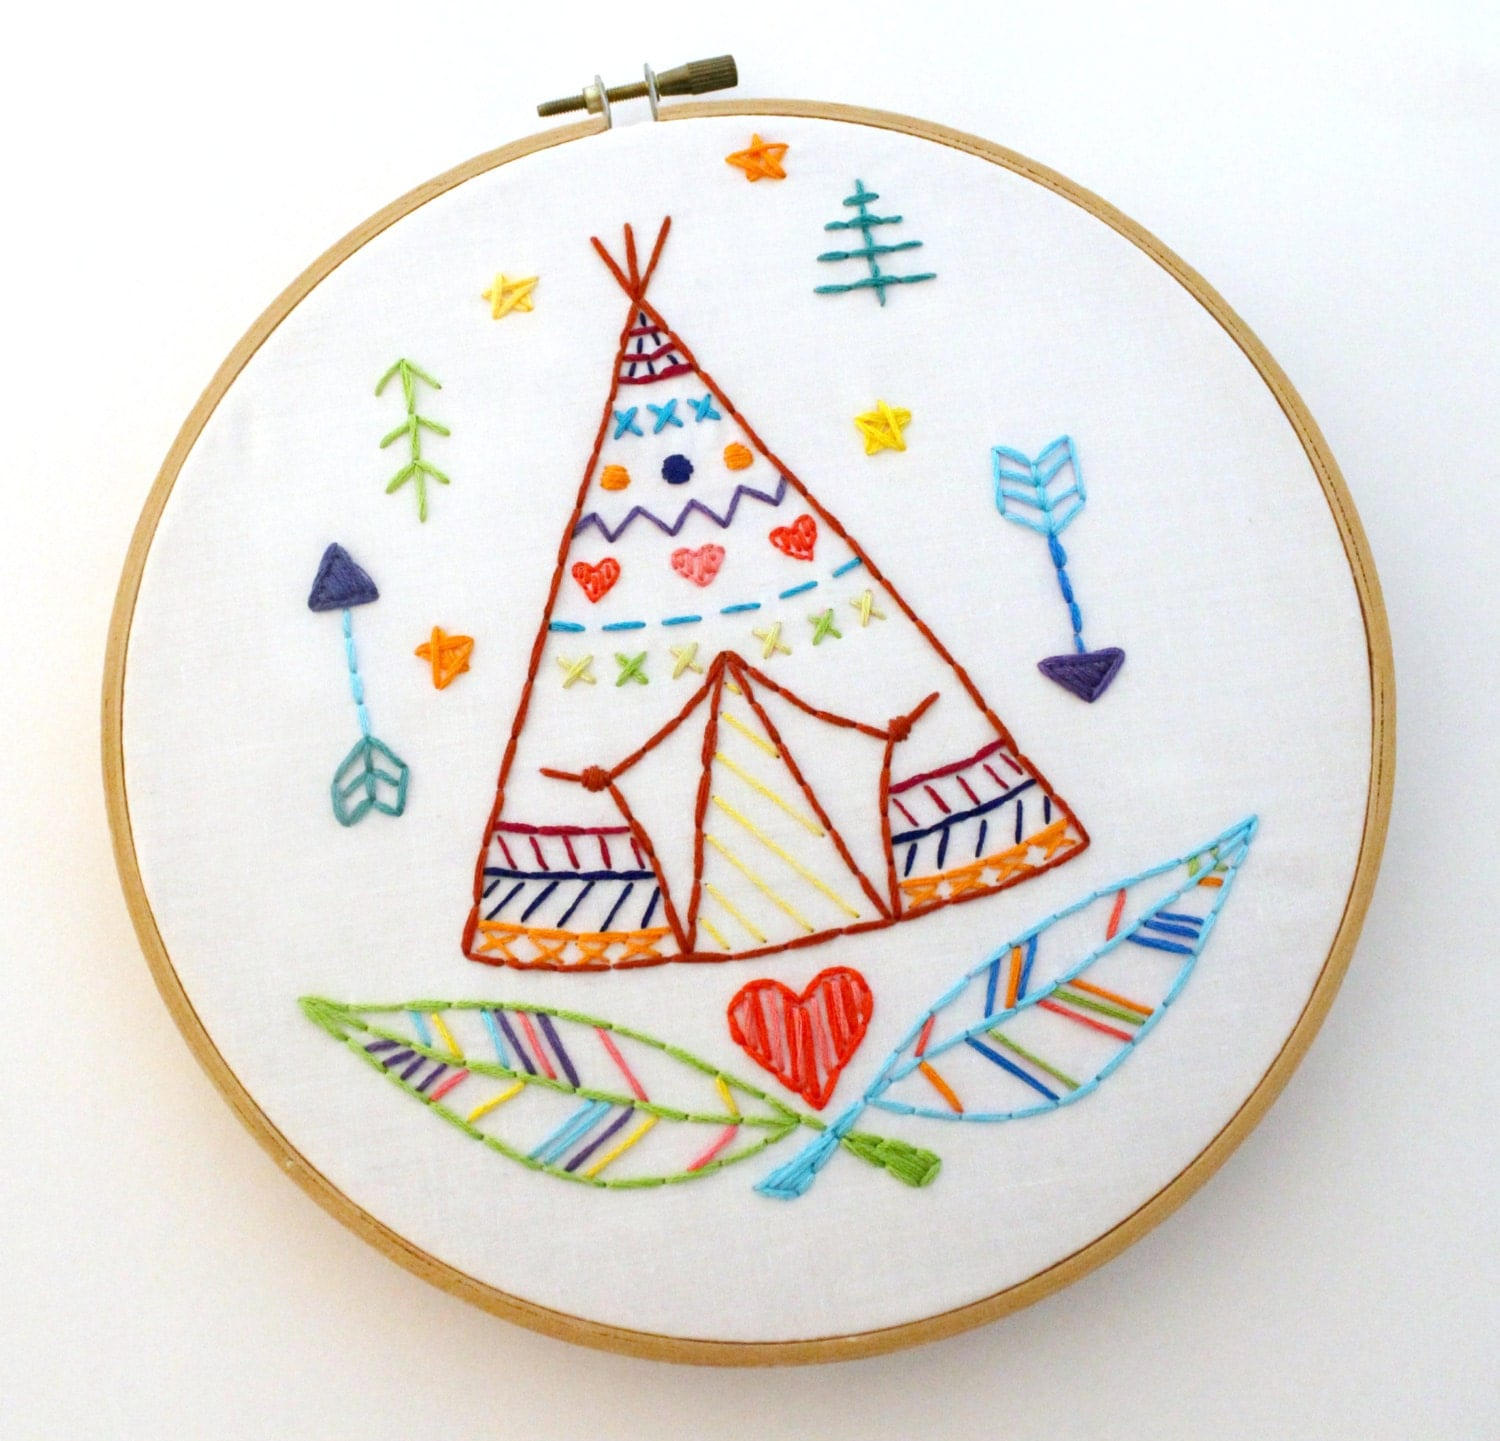 teepee western indian summer camp hand embroidery pdf